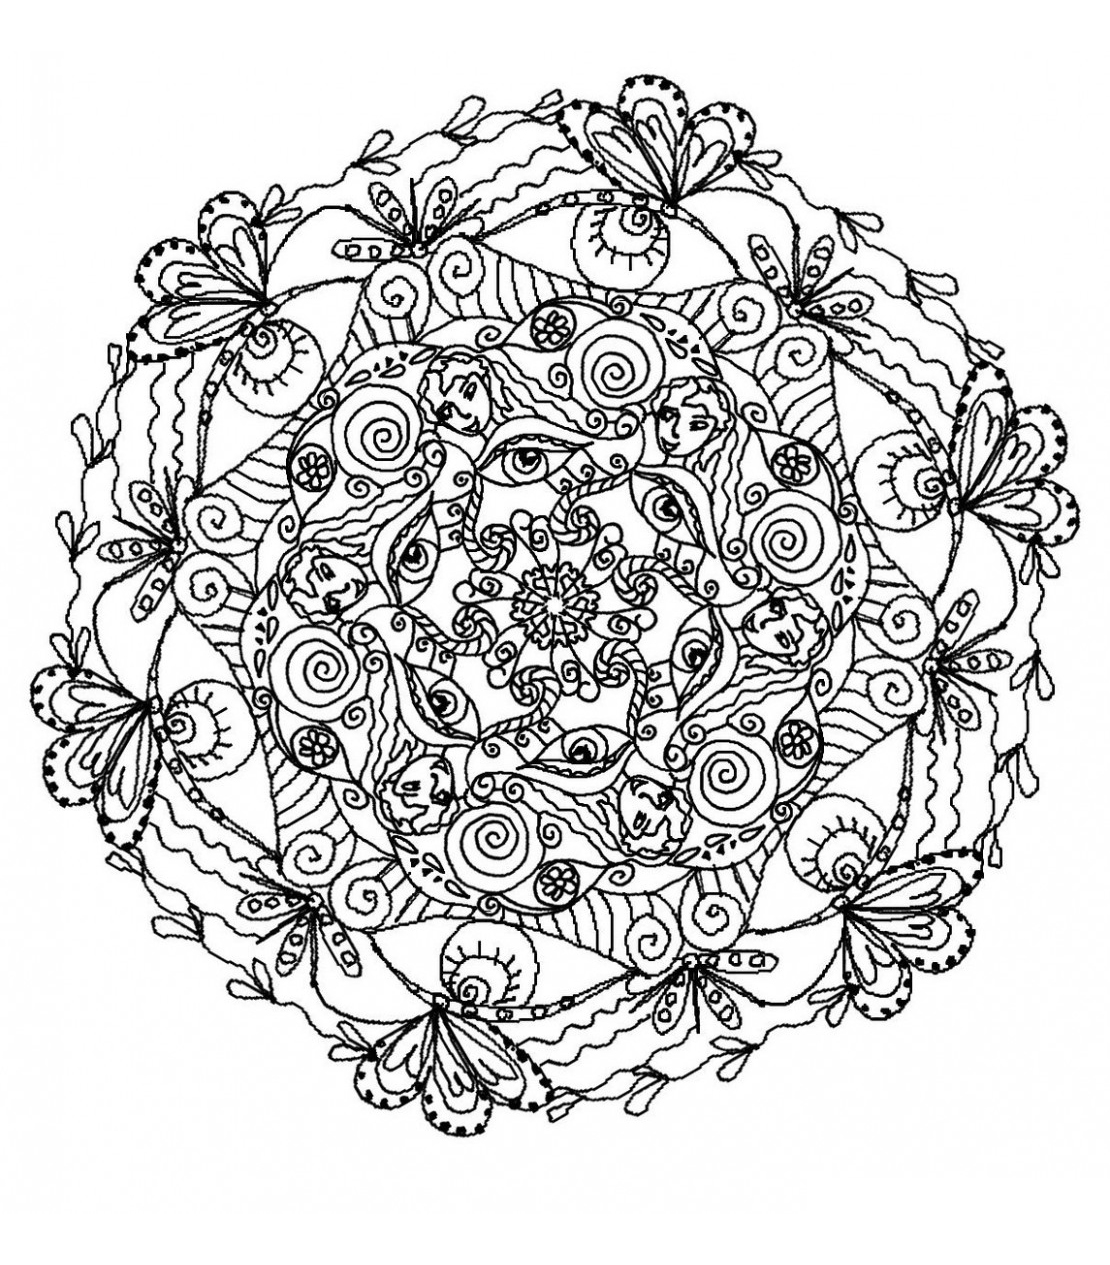 Coloring Page Mandala 5 Plants And Natural Patterns For This Refreshing Adult Colors In Green Tones Preferred